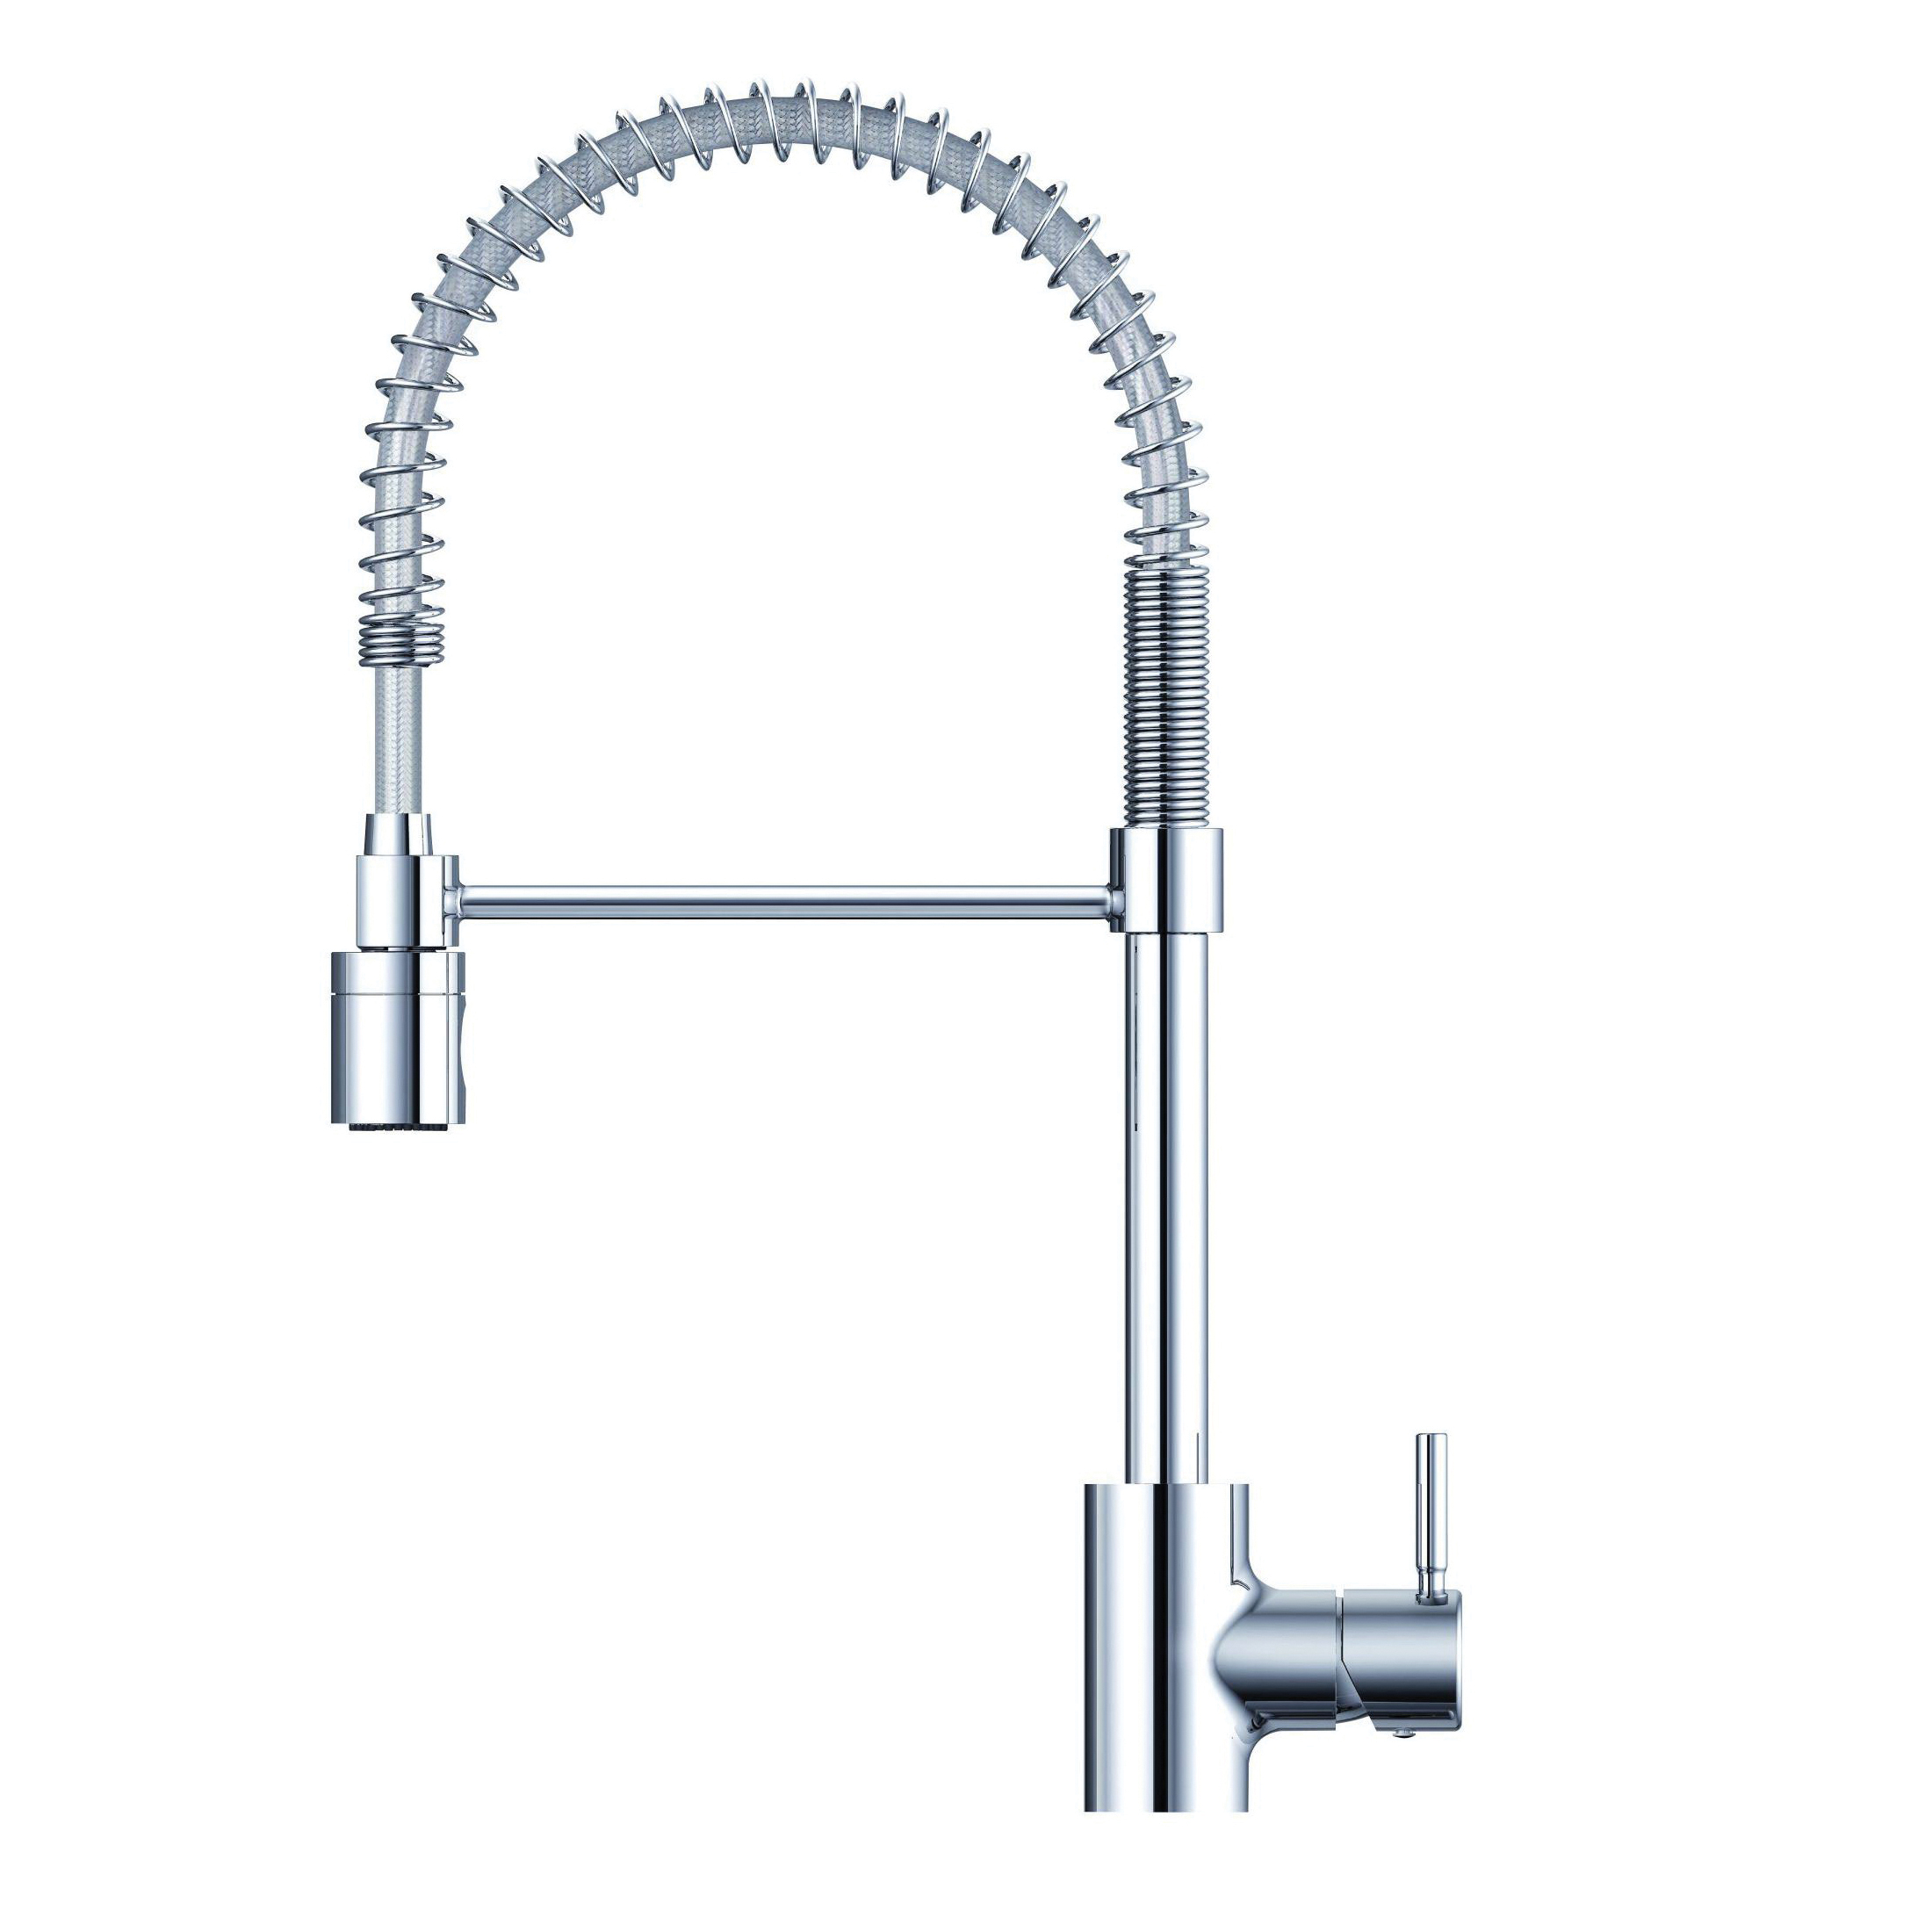 Danze® DH451188 The Foodie® Pull-Down Pre-Rinse Kitchen Faucet, 1.75 gpm Flow Rate, 360 deg Spring Swivel Spout, Import